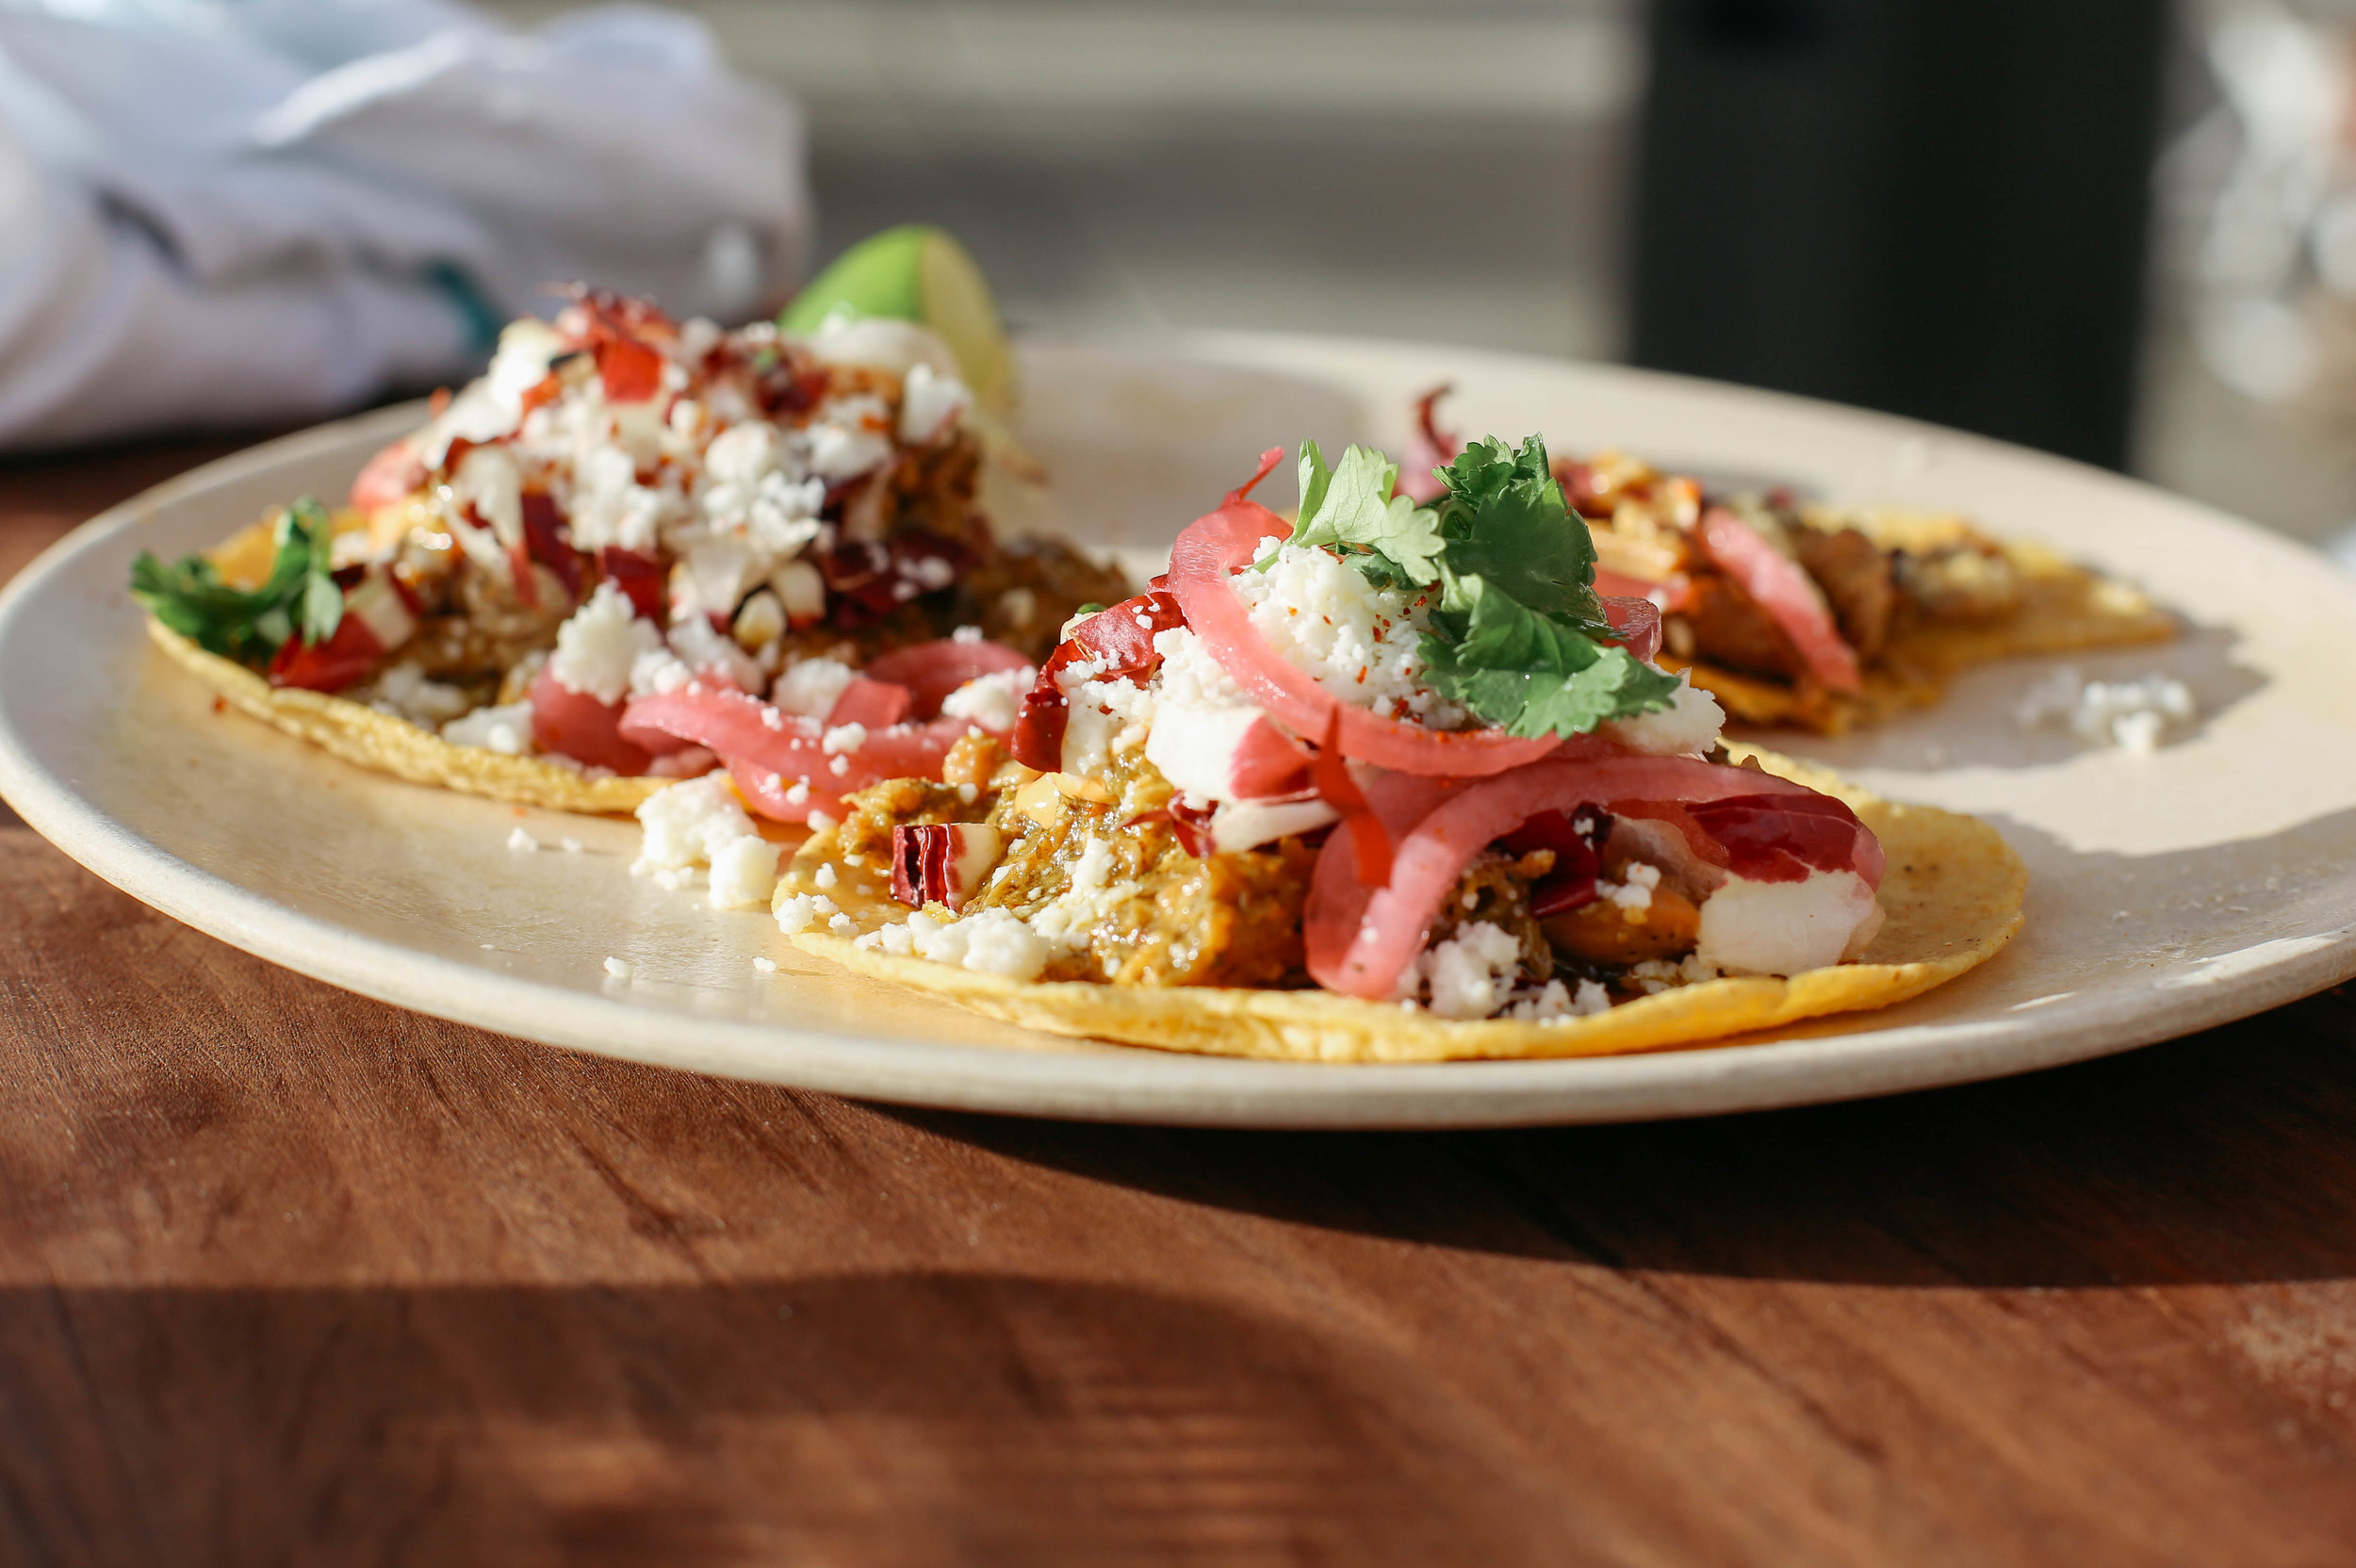 Absolute FAVORITE meal poolside- the chicken tacos!!! You must try these!!!!